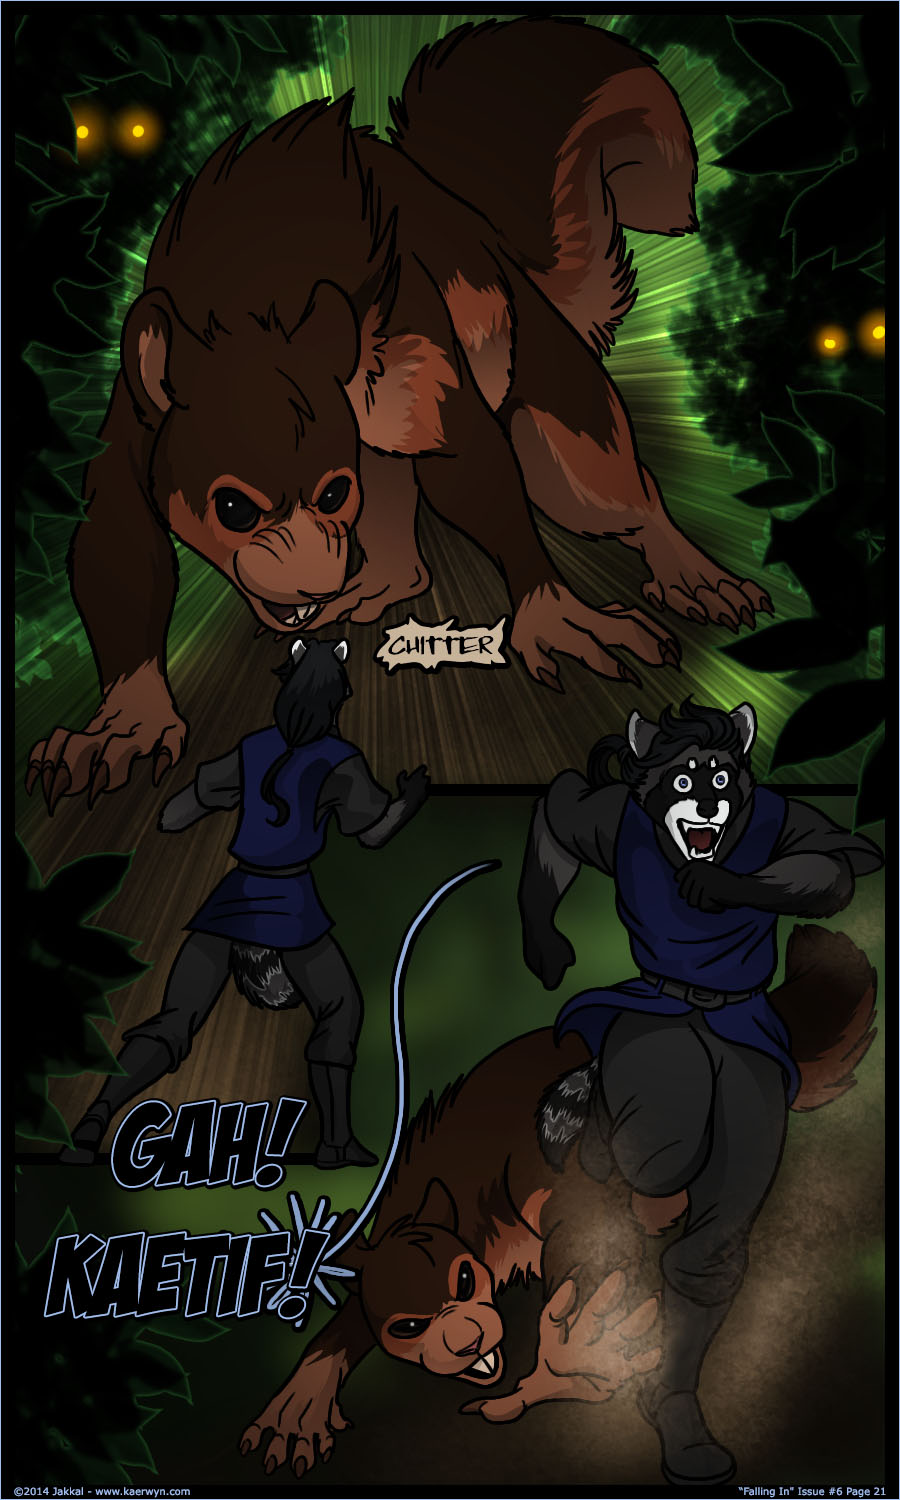 Issue 6 Page 21